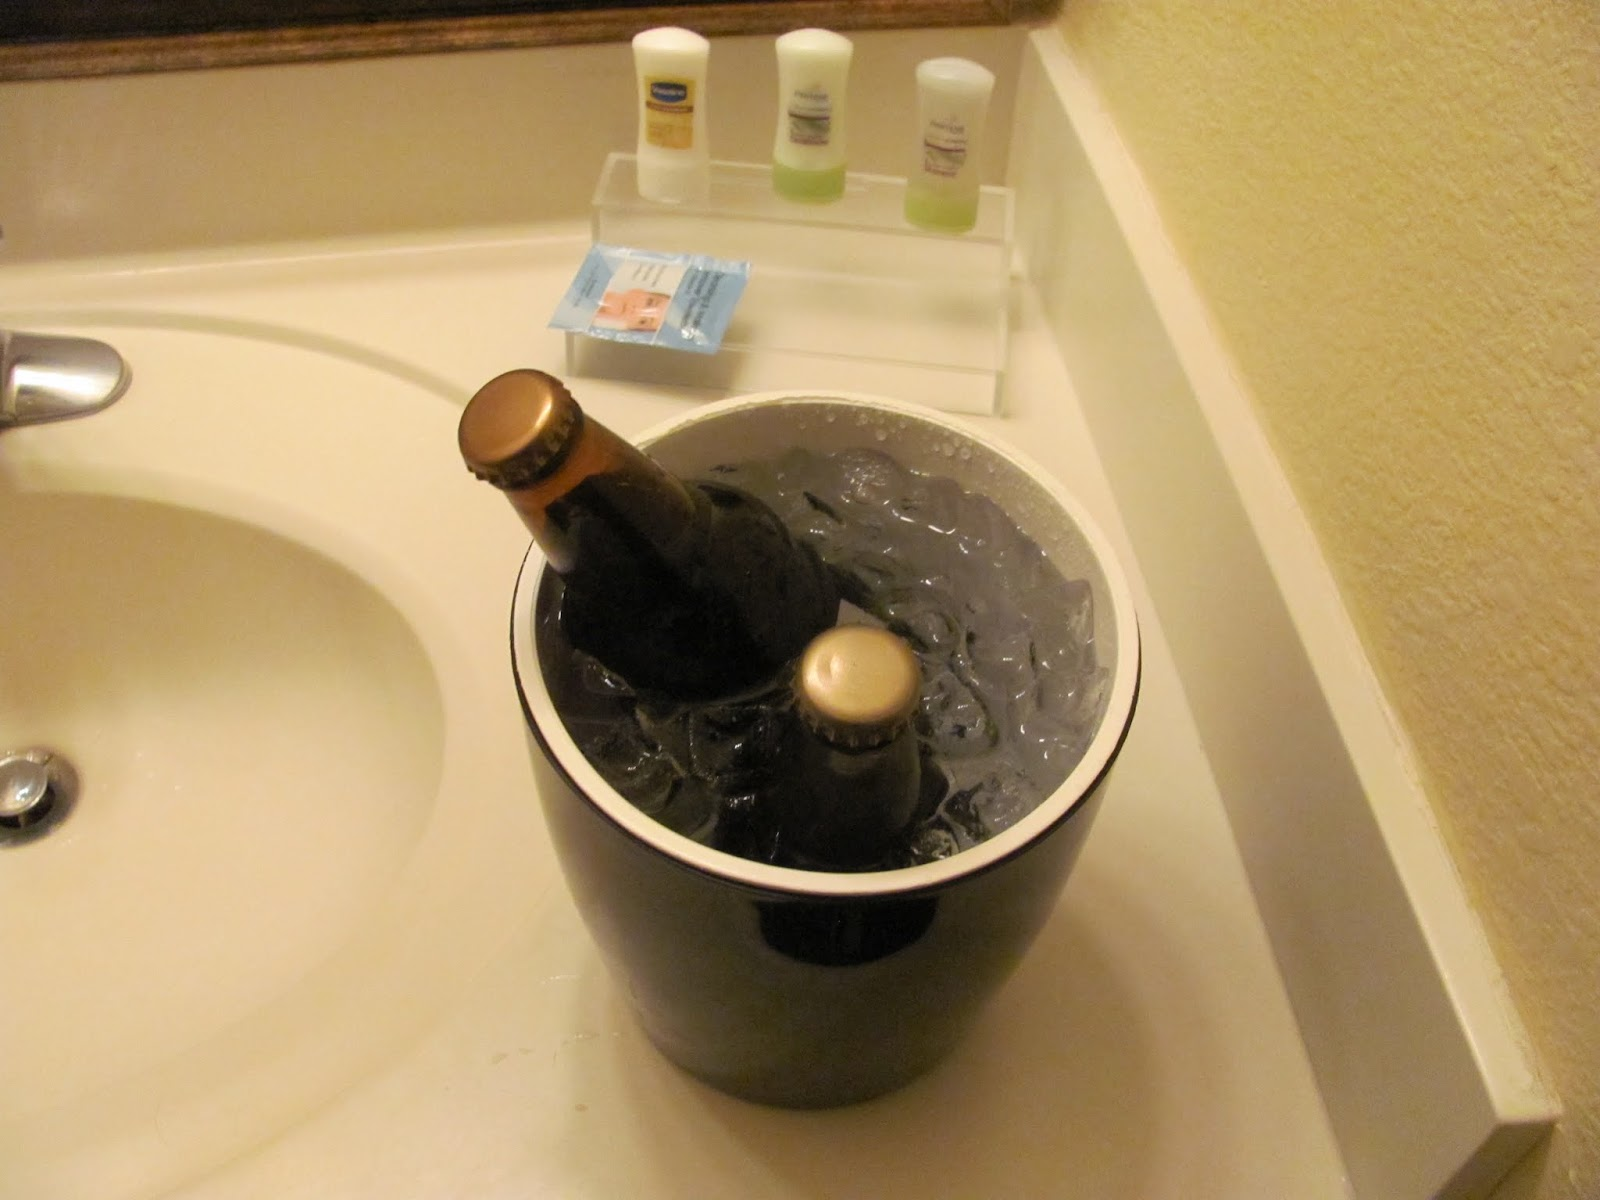 Two homebrews chill in an ice bucket at a hotel in Albuquerque, New Mexico